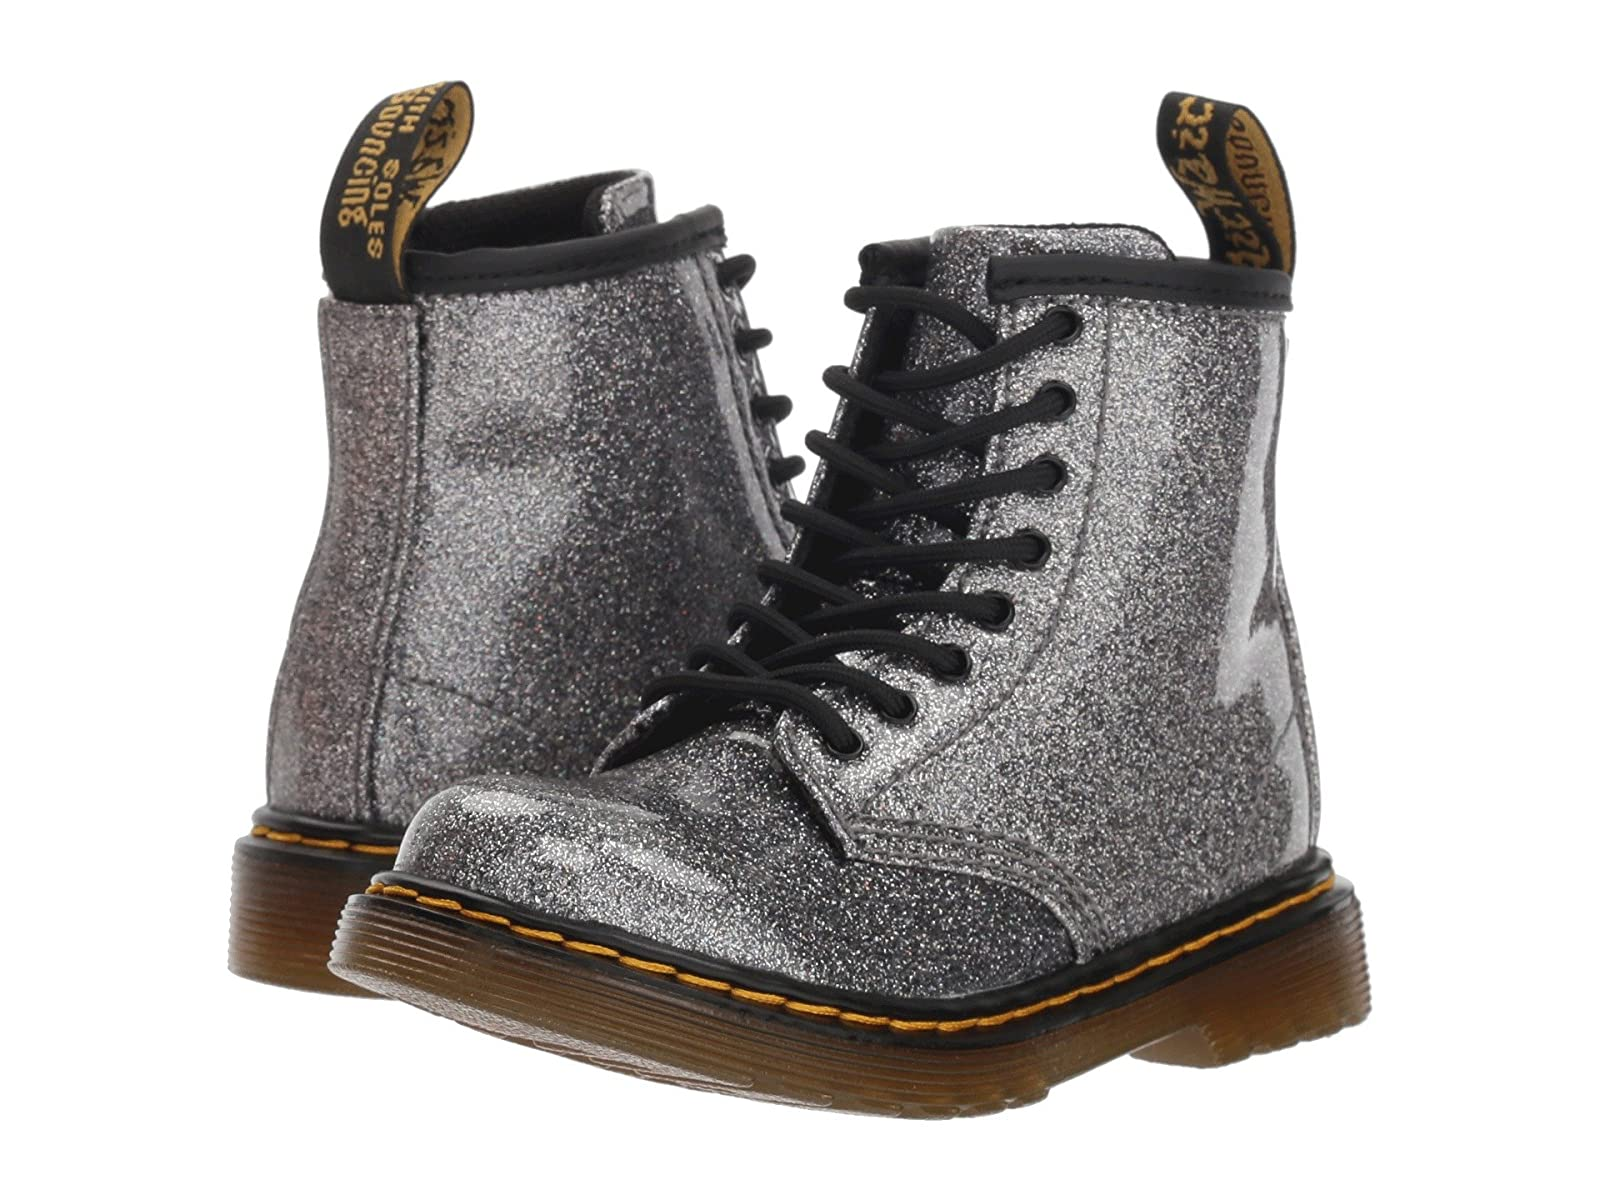 Dr. Martens Kid's Collection 1460 Patent Glitter Toddler Brooklee Boot (Toddler)Affordable and distinctive shoes